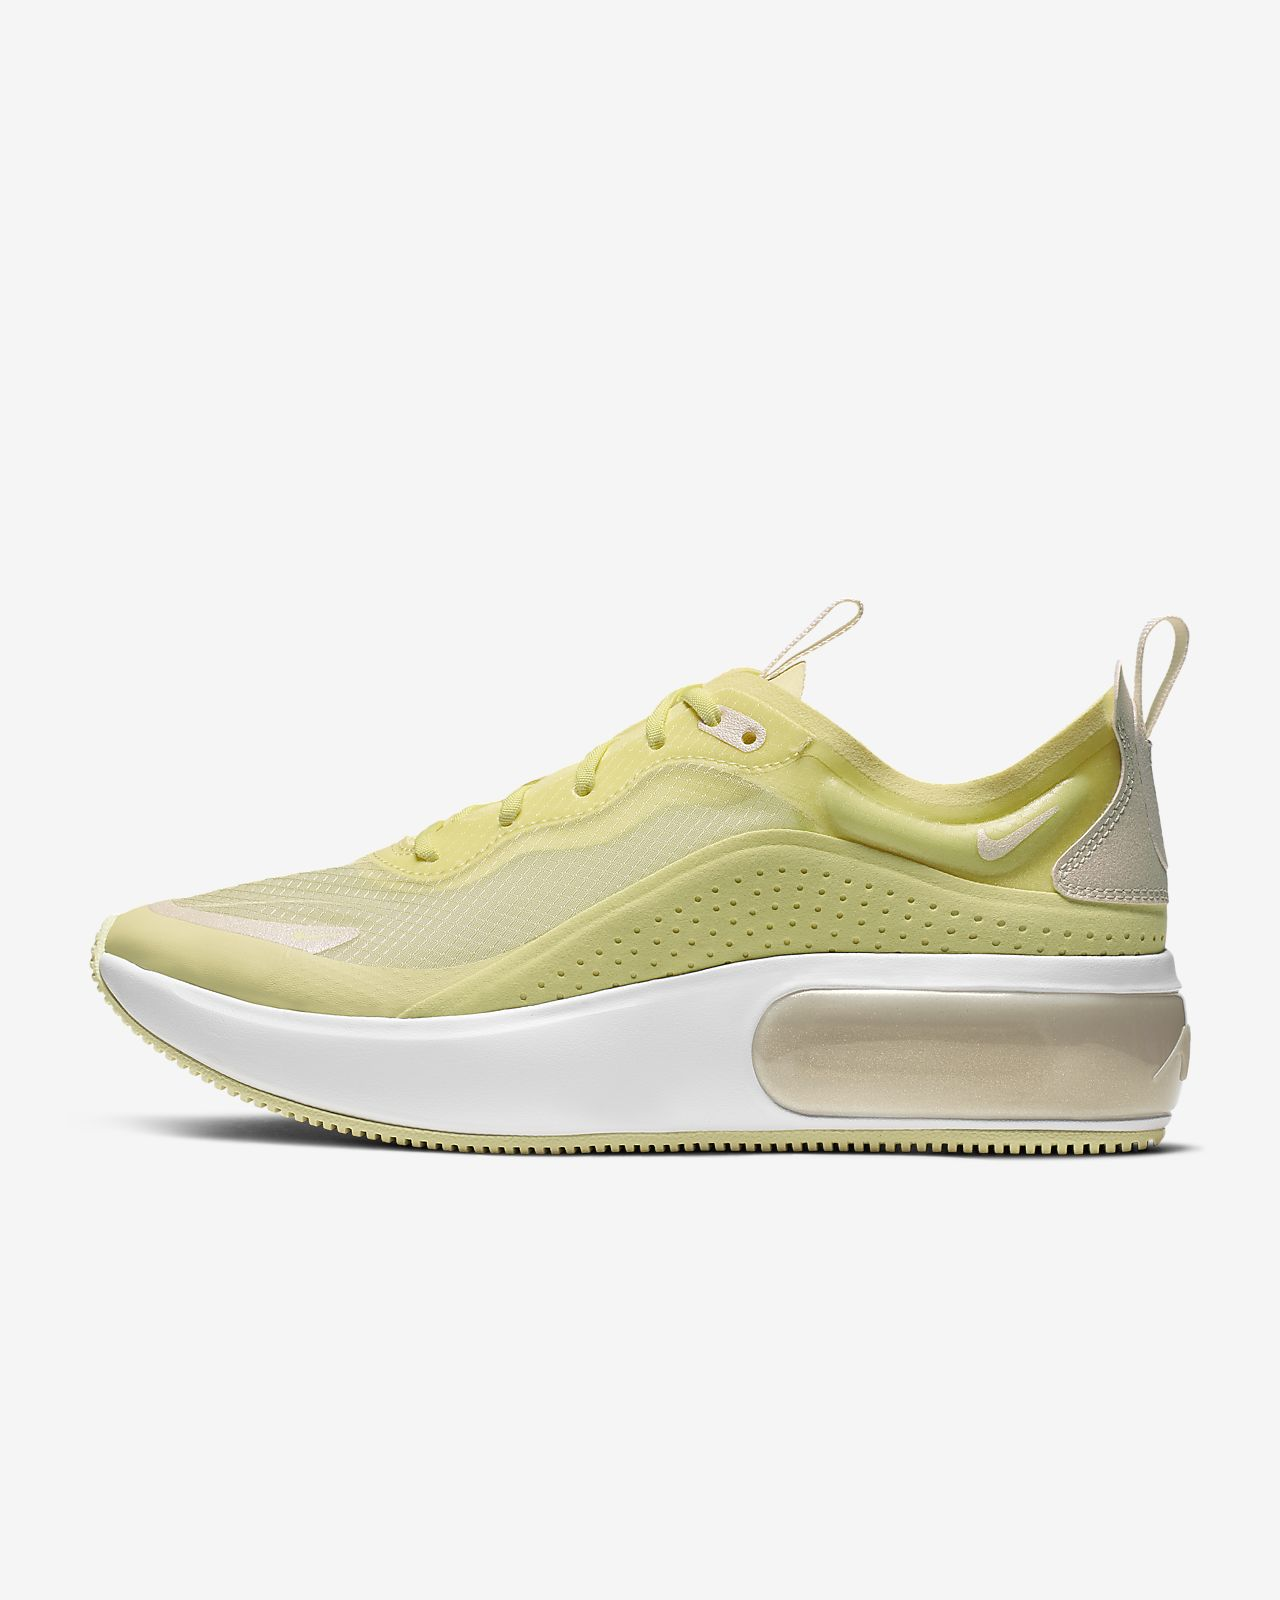 Nike Womens Lifestyle Shoes On Sale Nike Air Max Thea LX